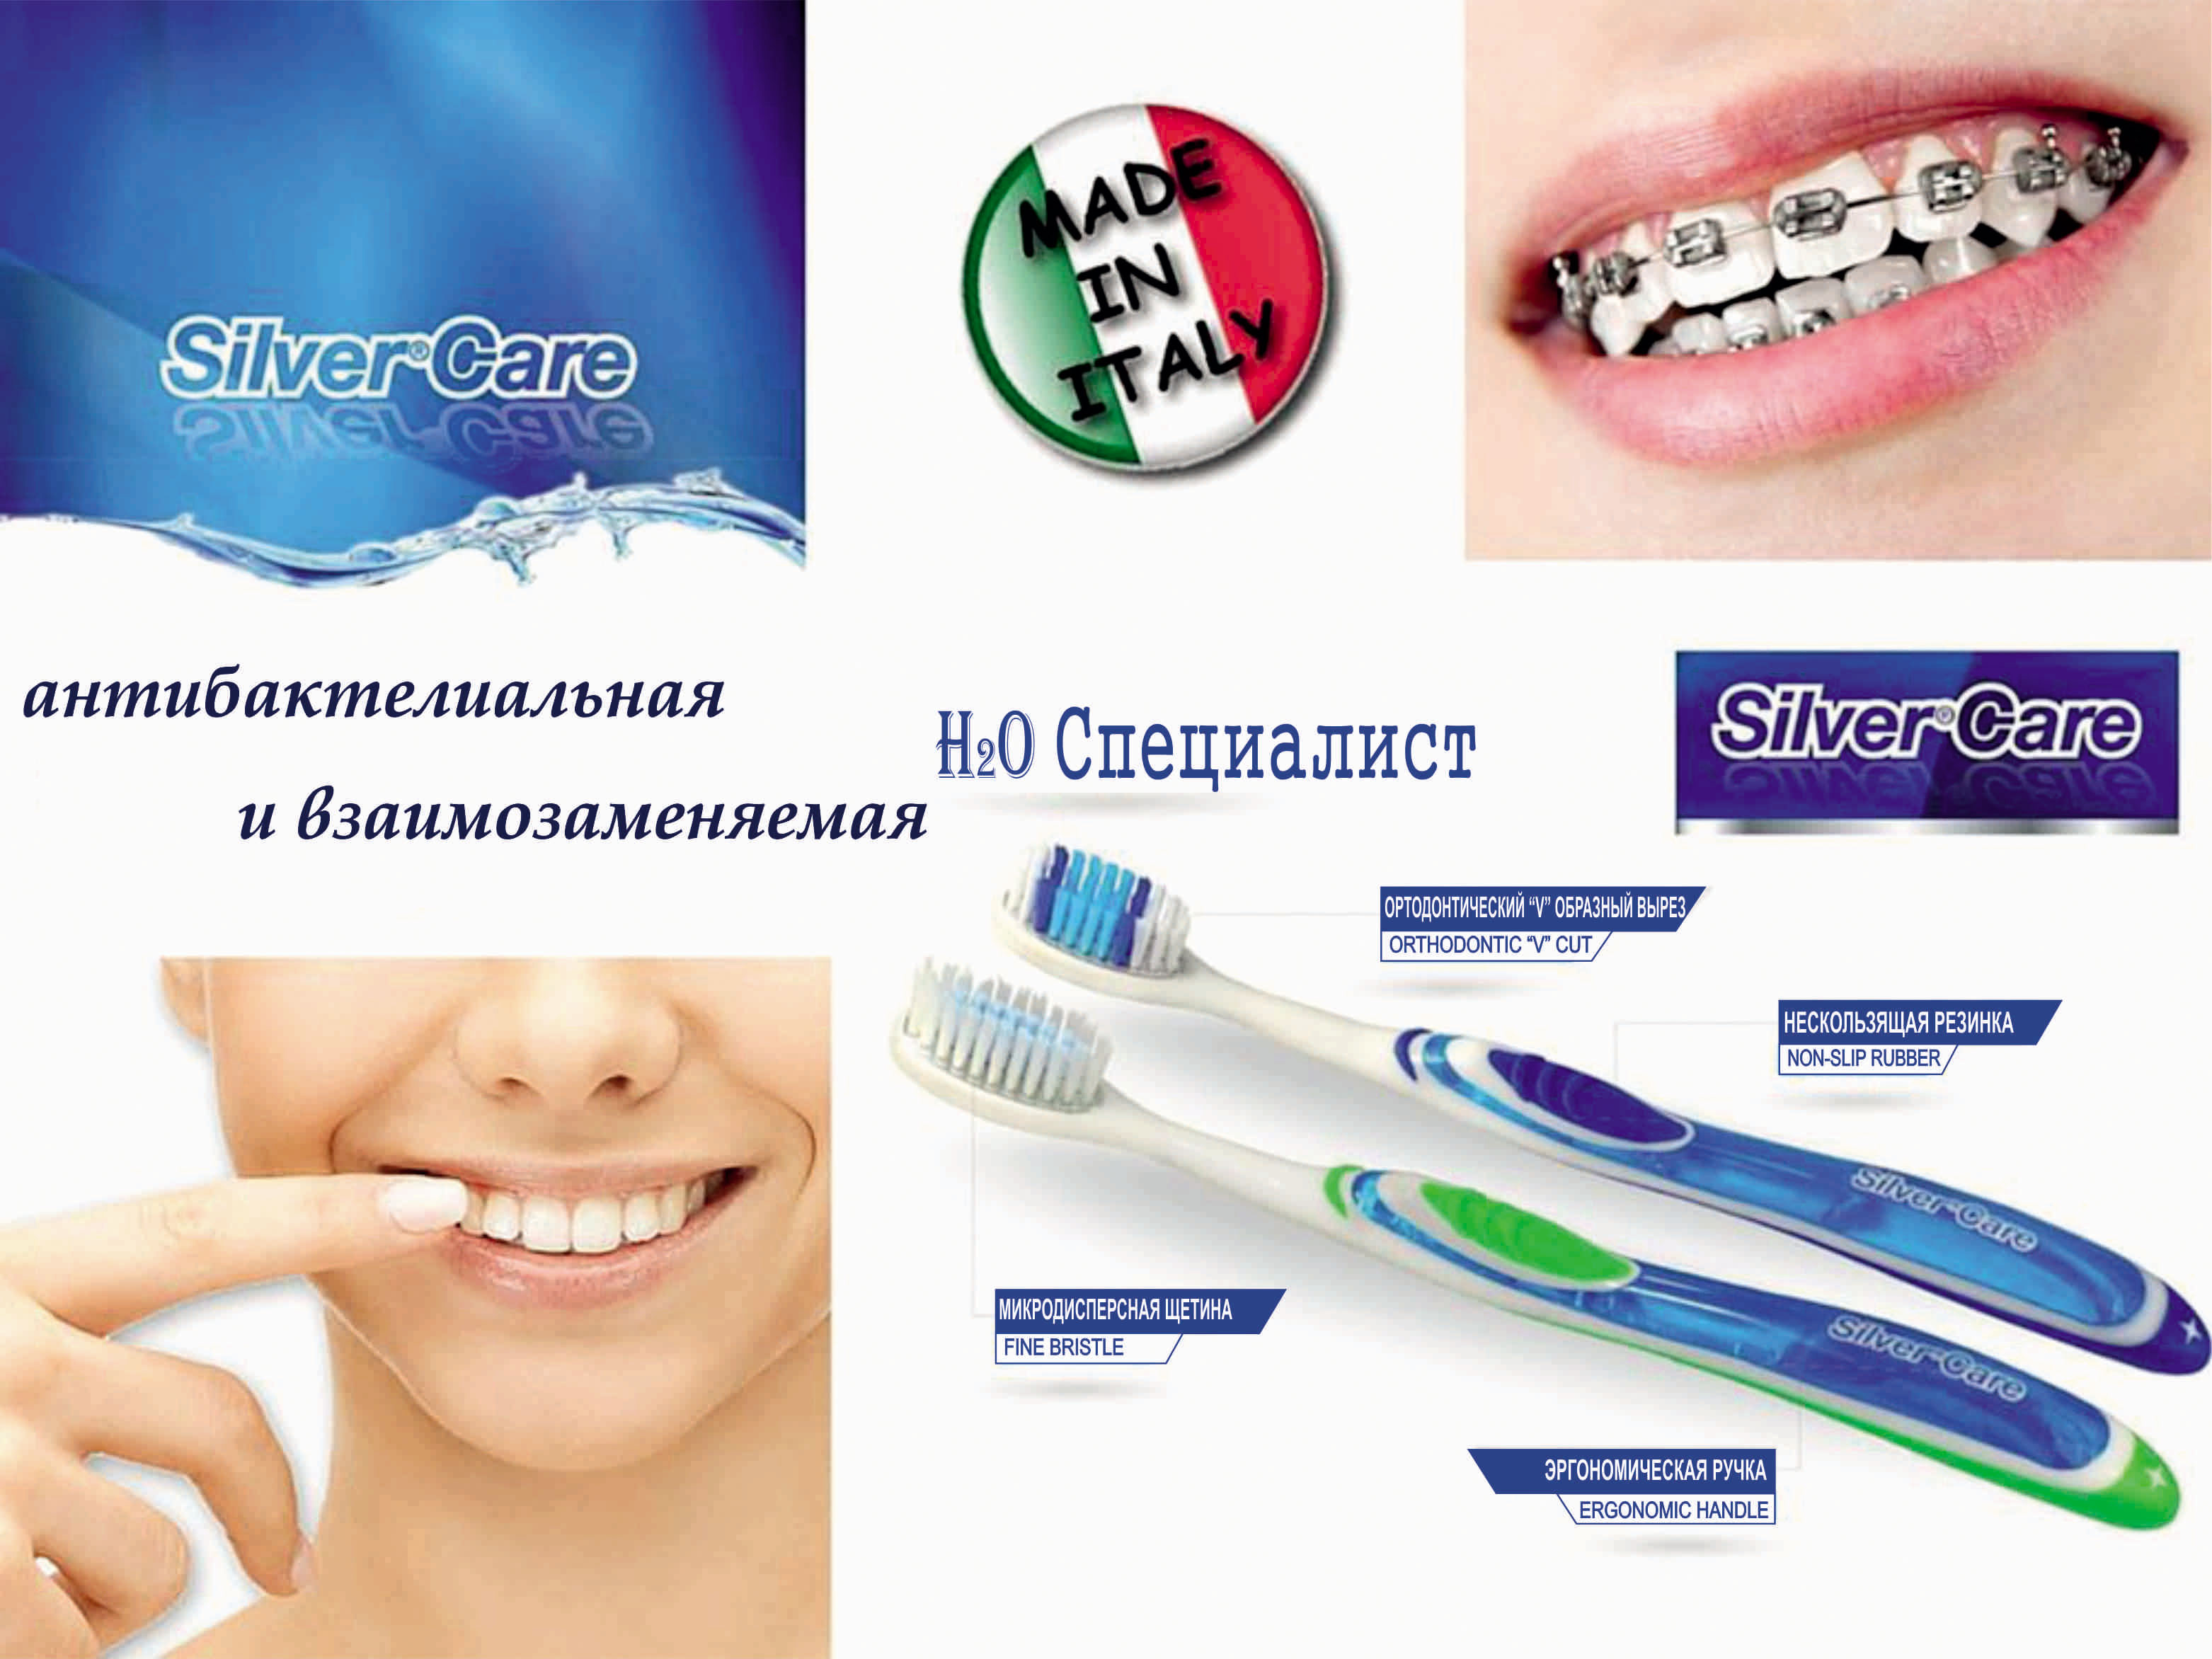 0000476_silvercare-h2o-orthodontic